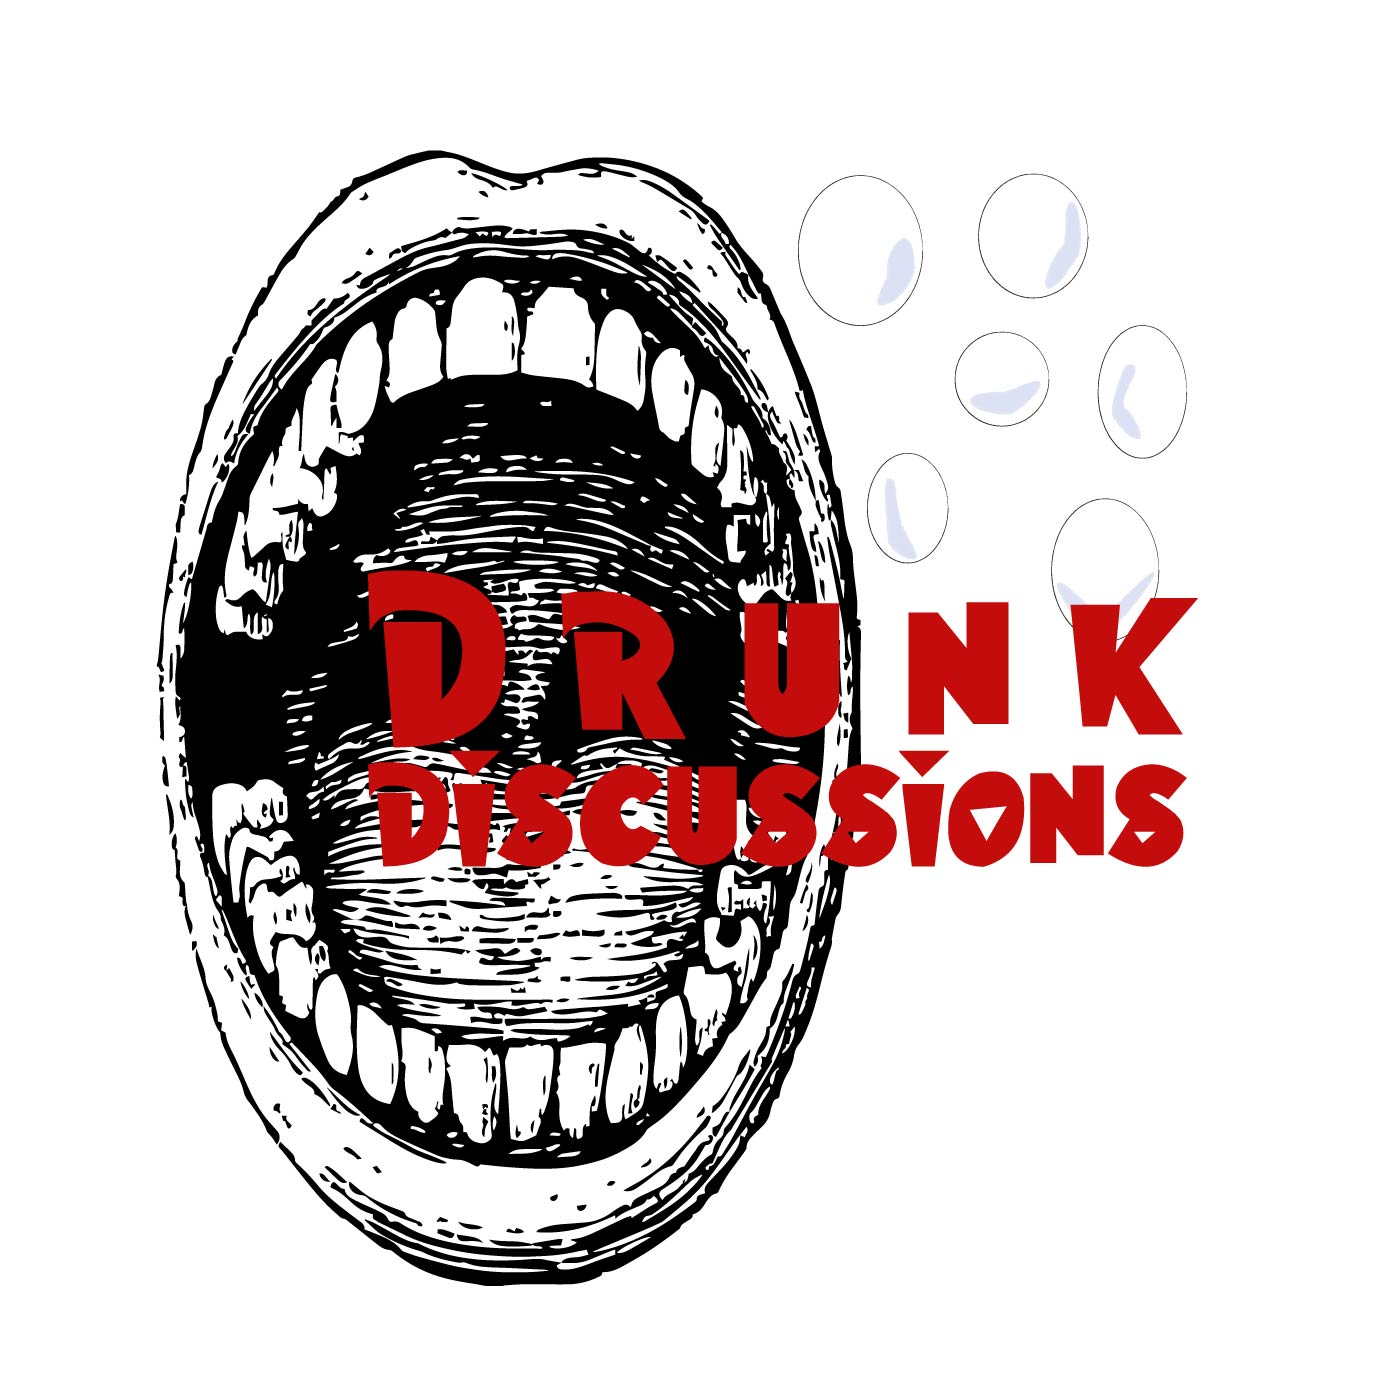 Drunk Discussions Podcast